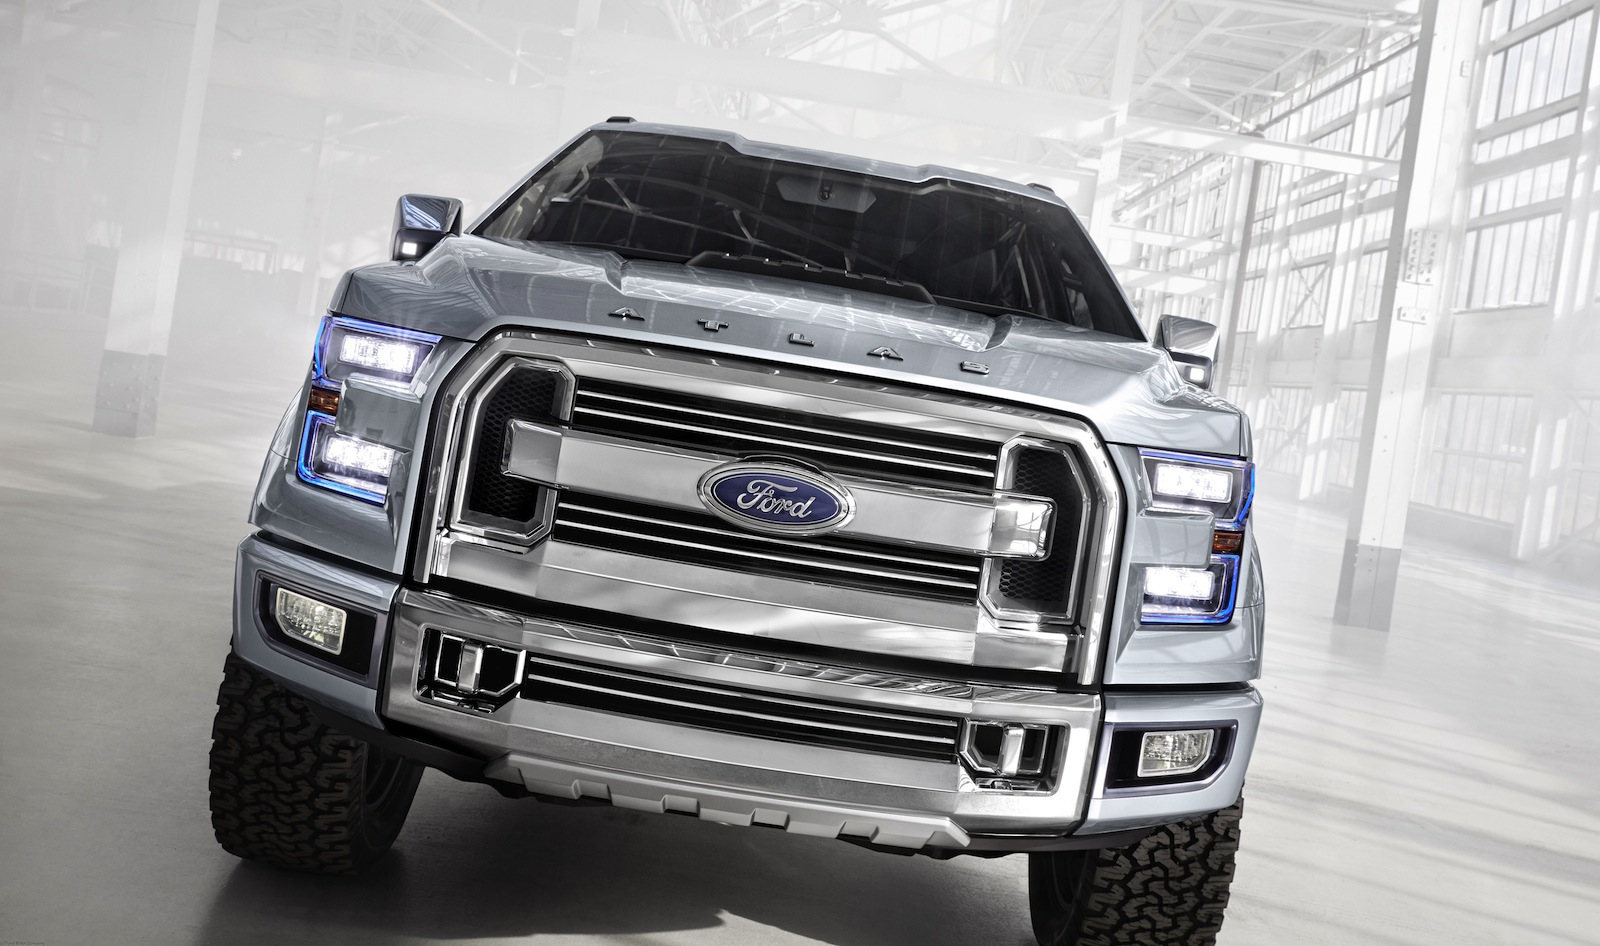 Ford Atlas concept teases new F-150 - Photos (1 of 18)